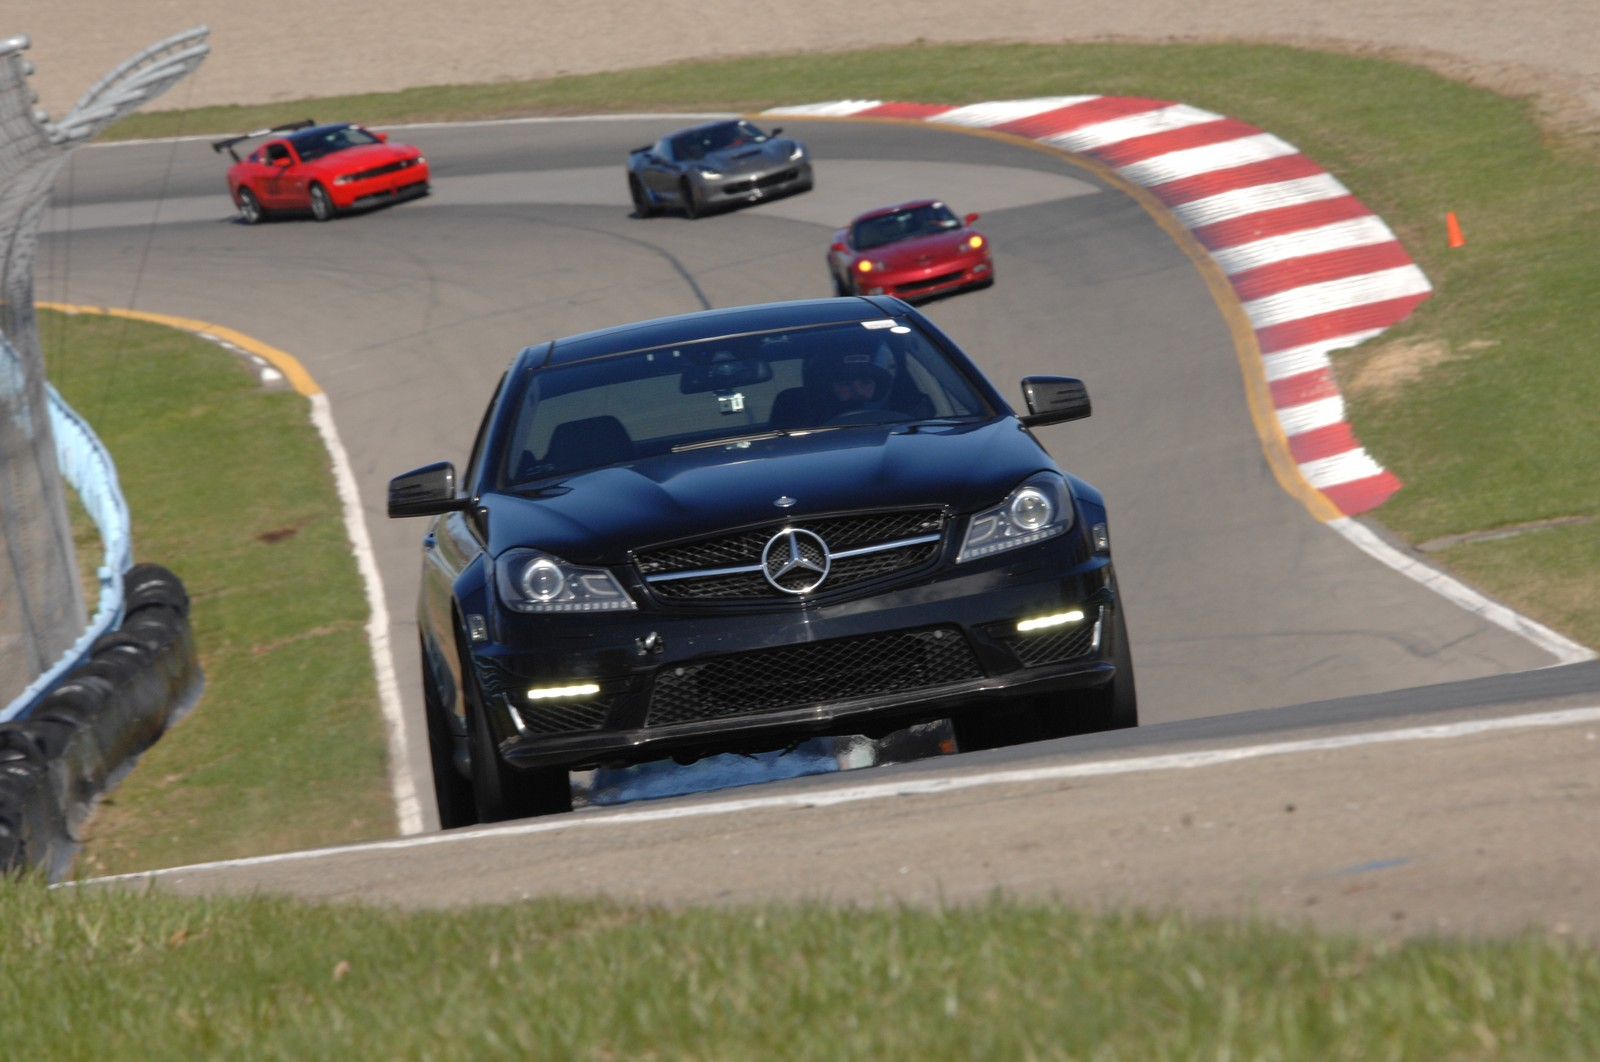 2012 Mercedes Benz C63 AMG P31 Coupe 1 4 mile trap speeds